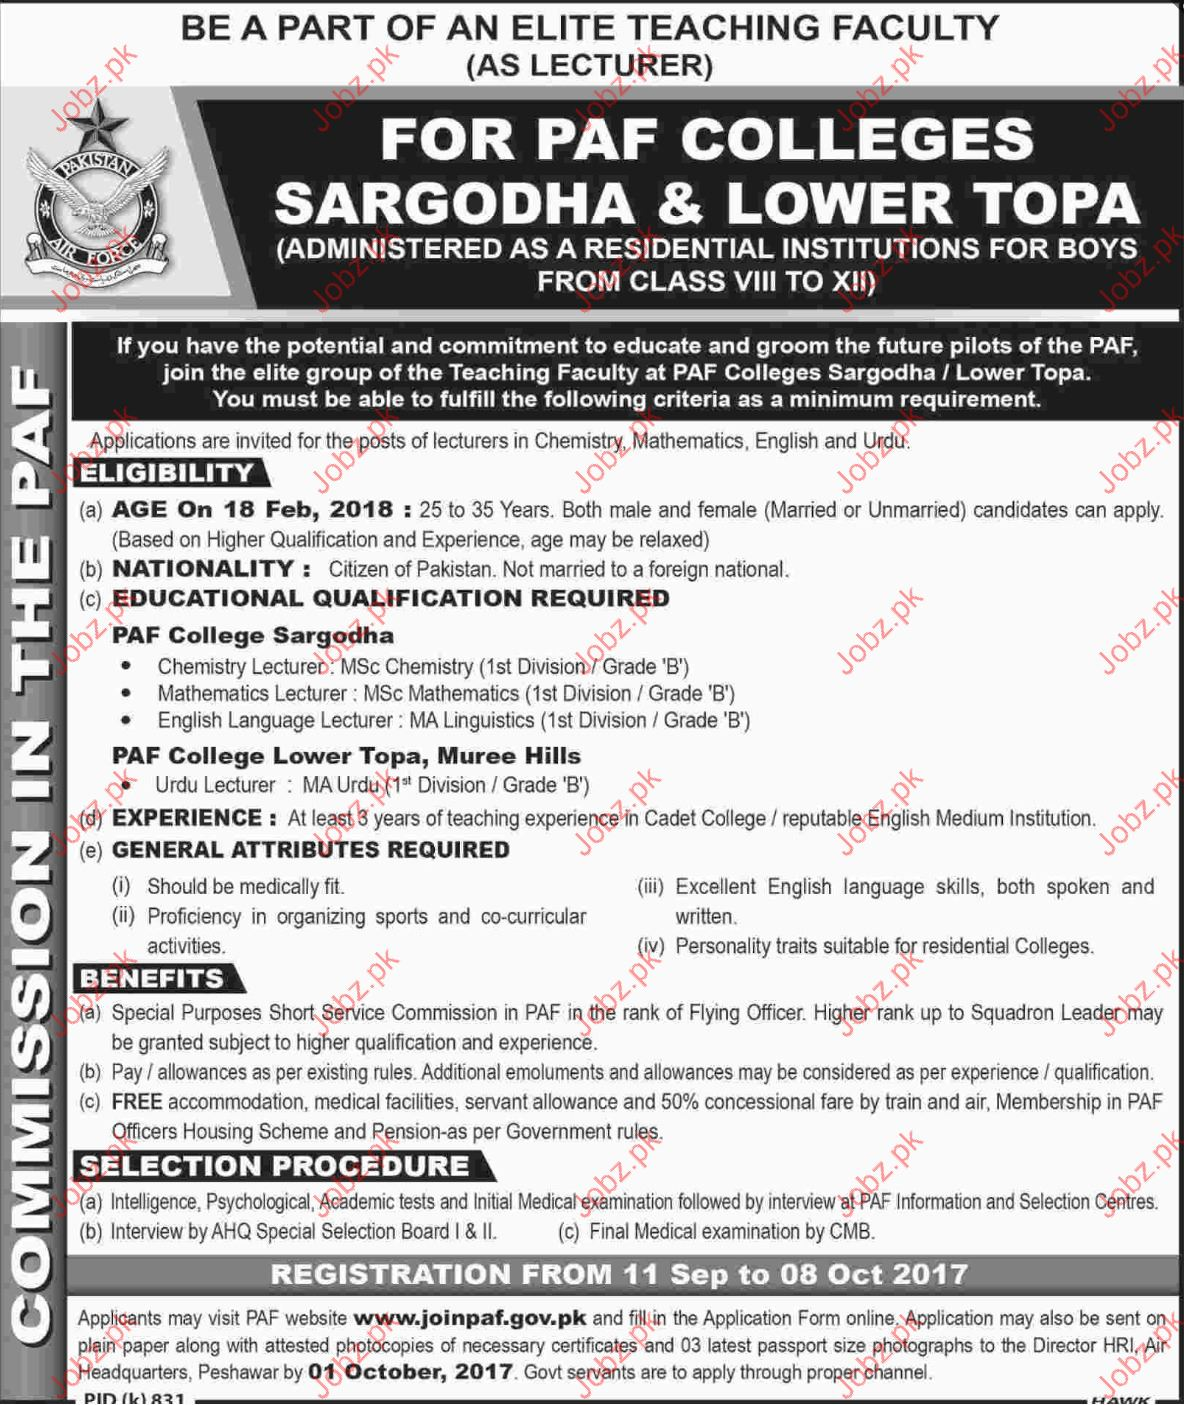 PAF Colleges Sargodha and Lower Topa Jobs Opportunity